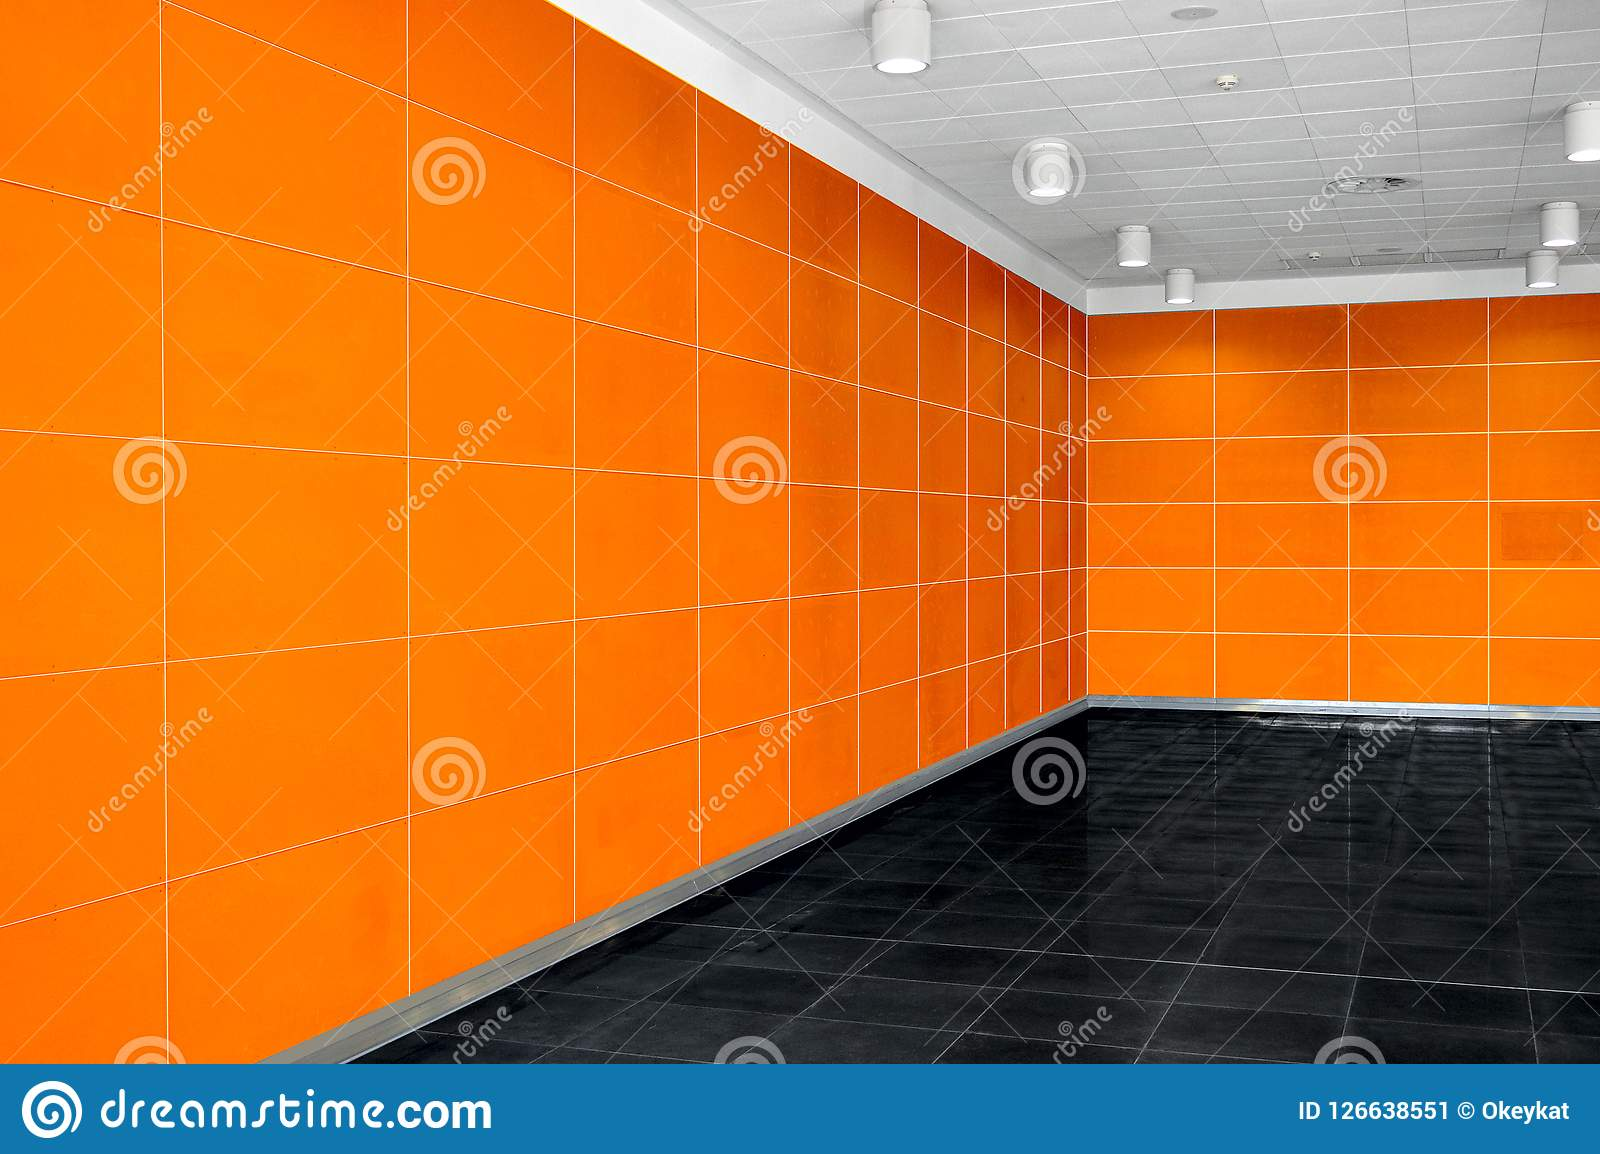 Big empty room interior with bright orange wall, whire ceiling a